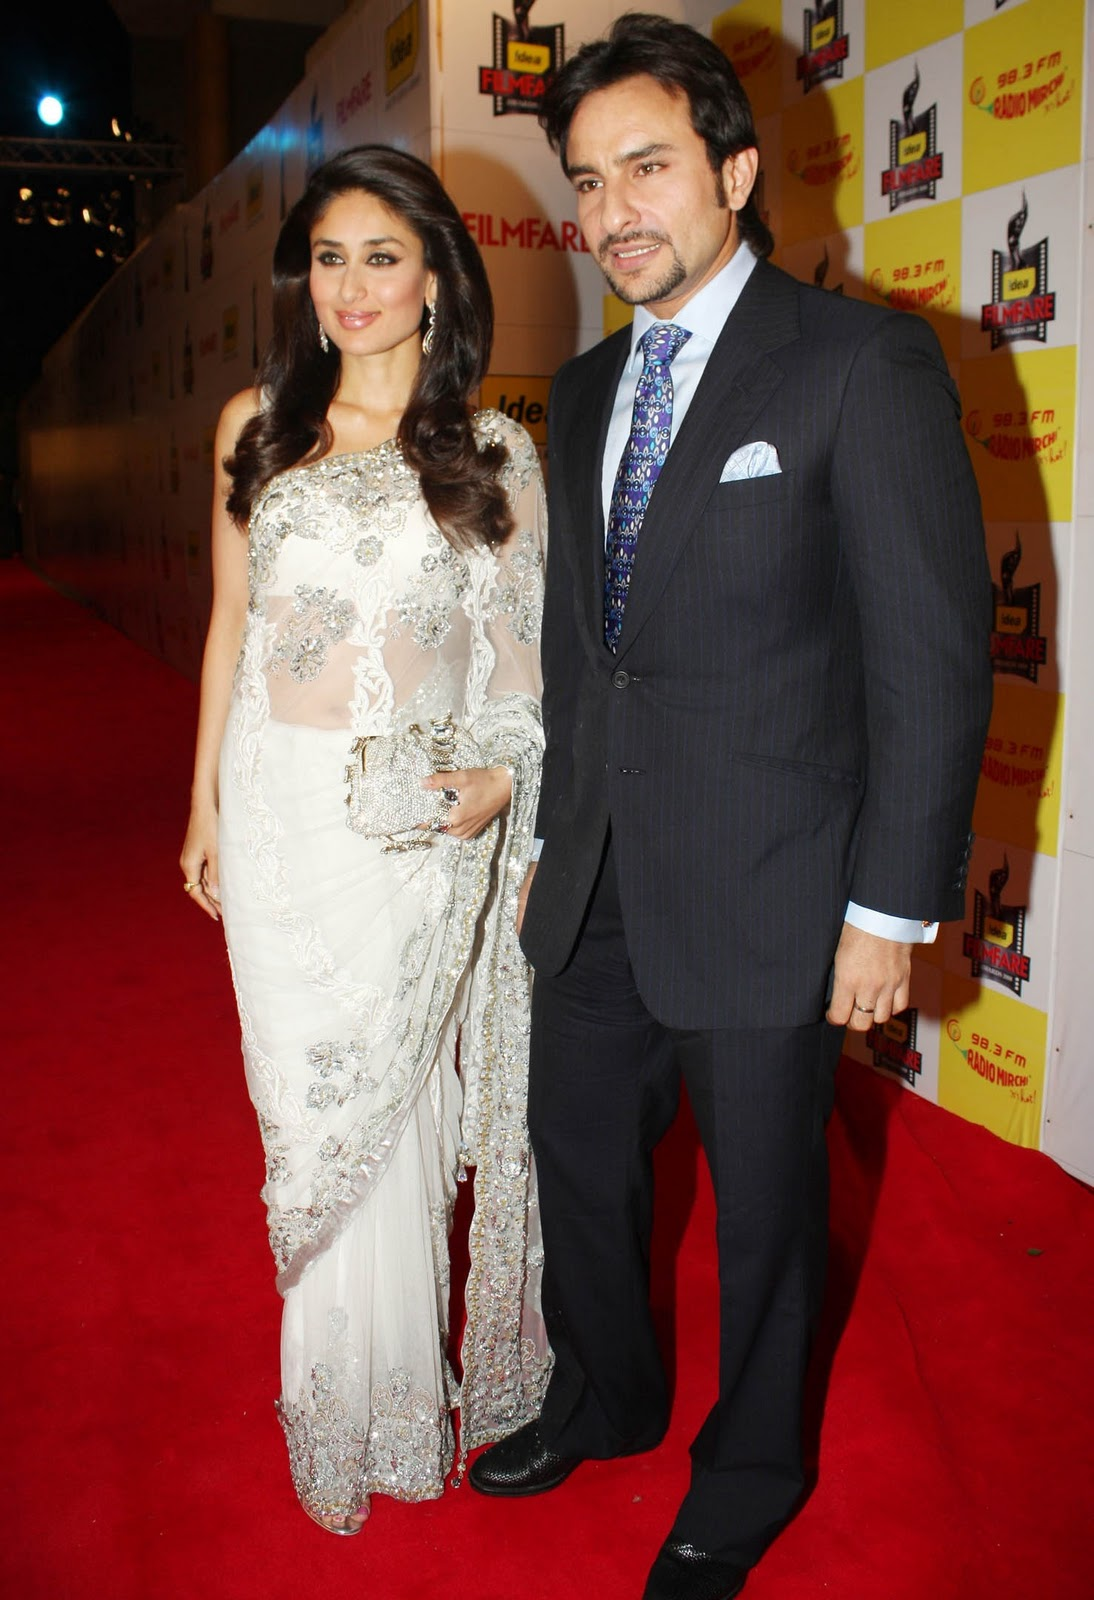 http://4.bp.blogspot.com/_mX3YEjd8UlM/TP4SnoJimfI/AAAAAAAAAXI/STEBNCNiMUk/s1600/kareena-kapoor-and-saif-ali-khan-walking-the-red-carpet-at-the-54th-idea-filmfare-awards-2008.jpg